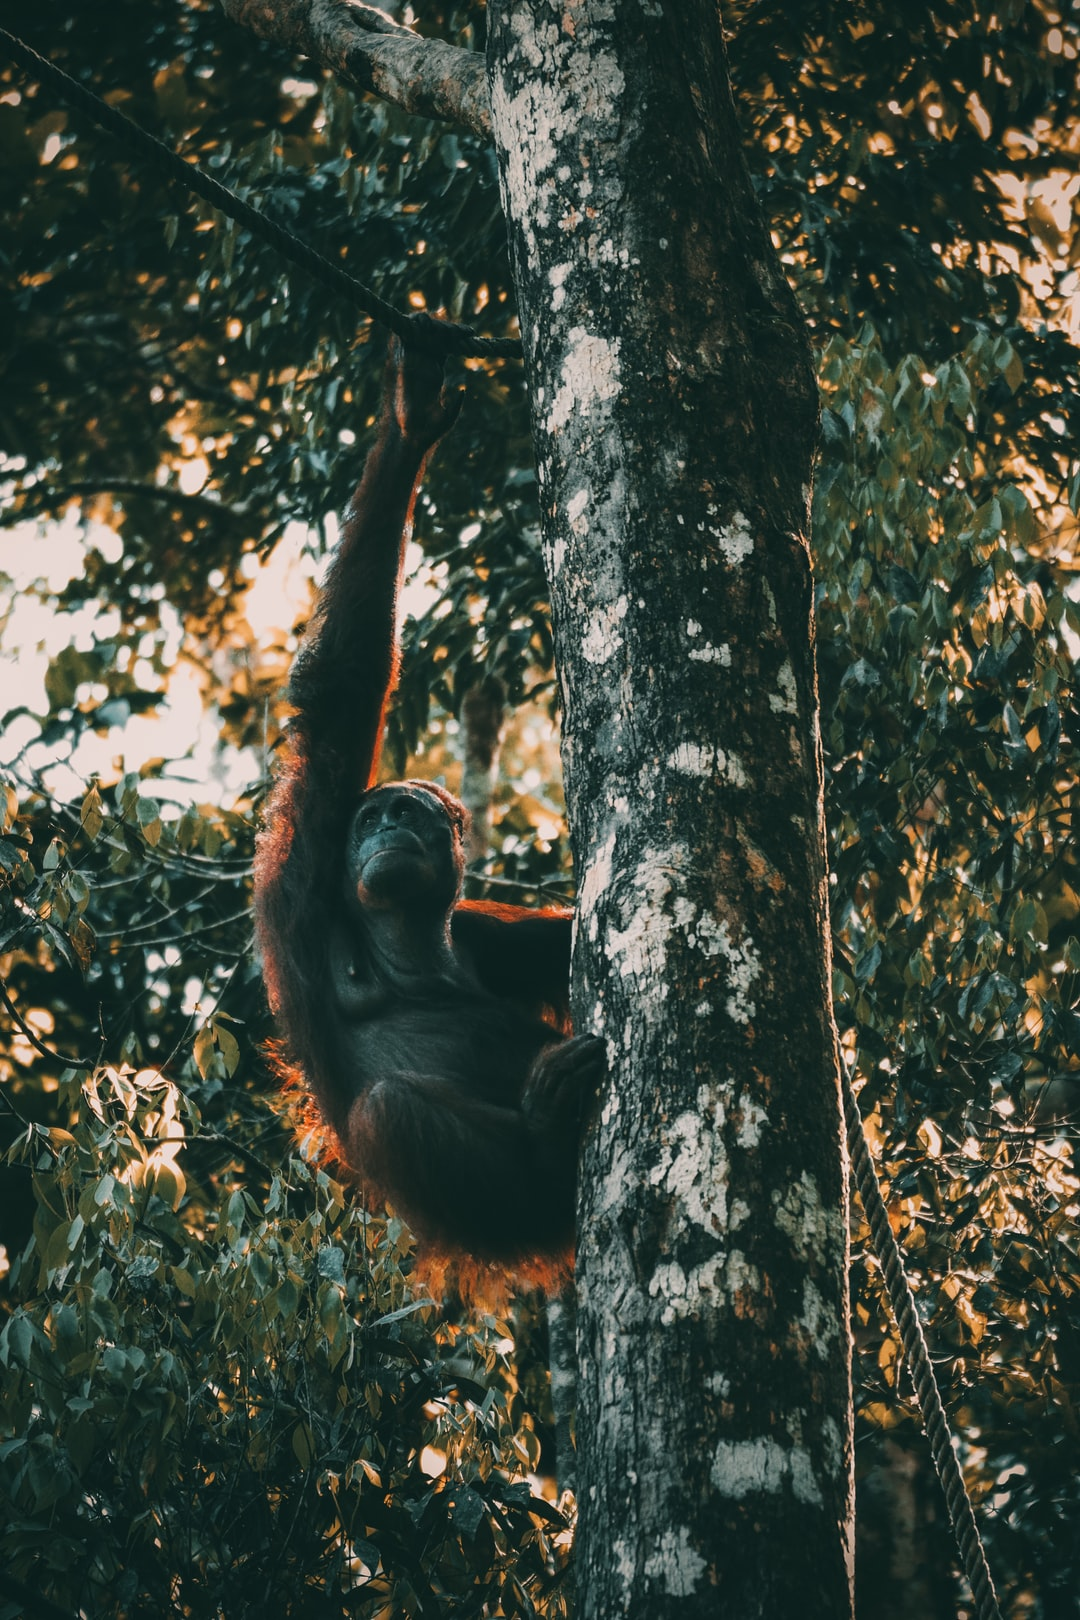 ape pictures download free images on unsplash